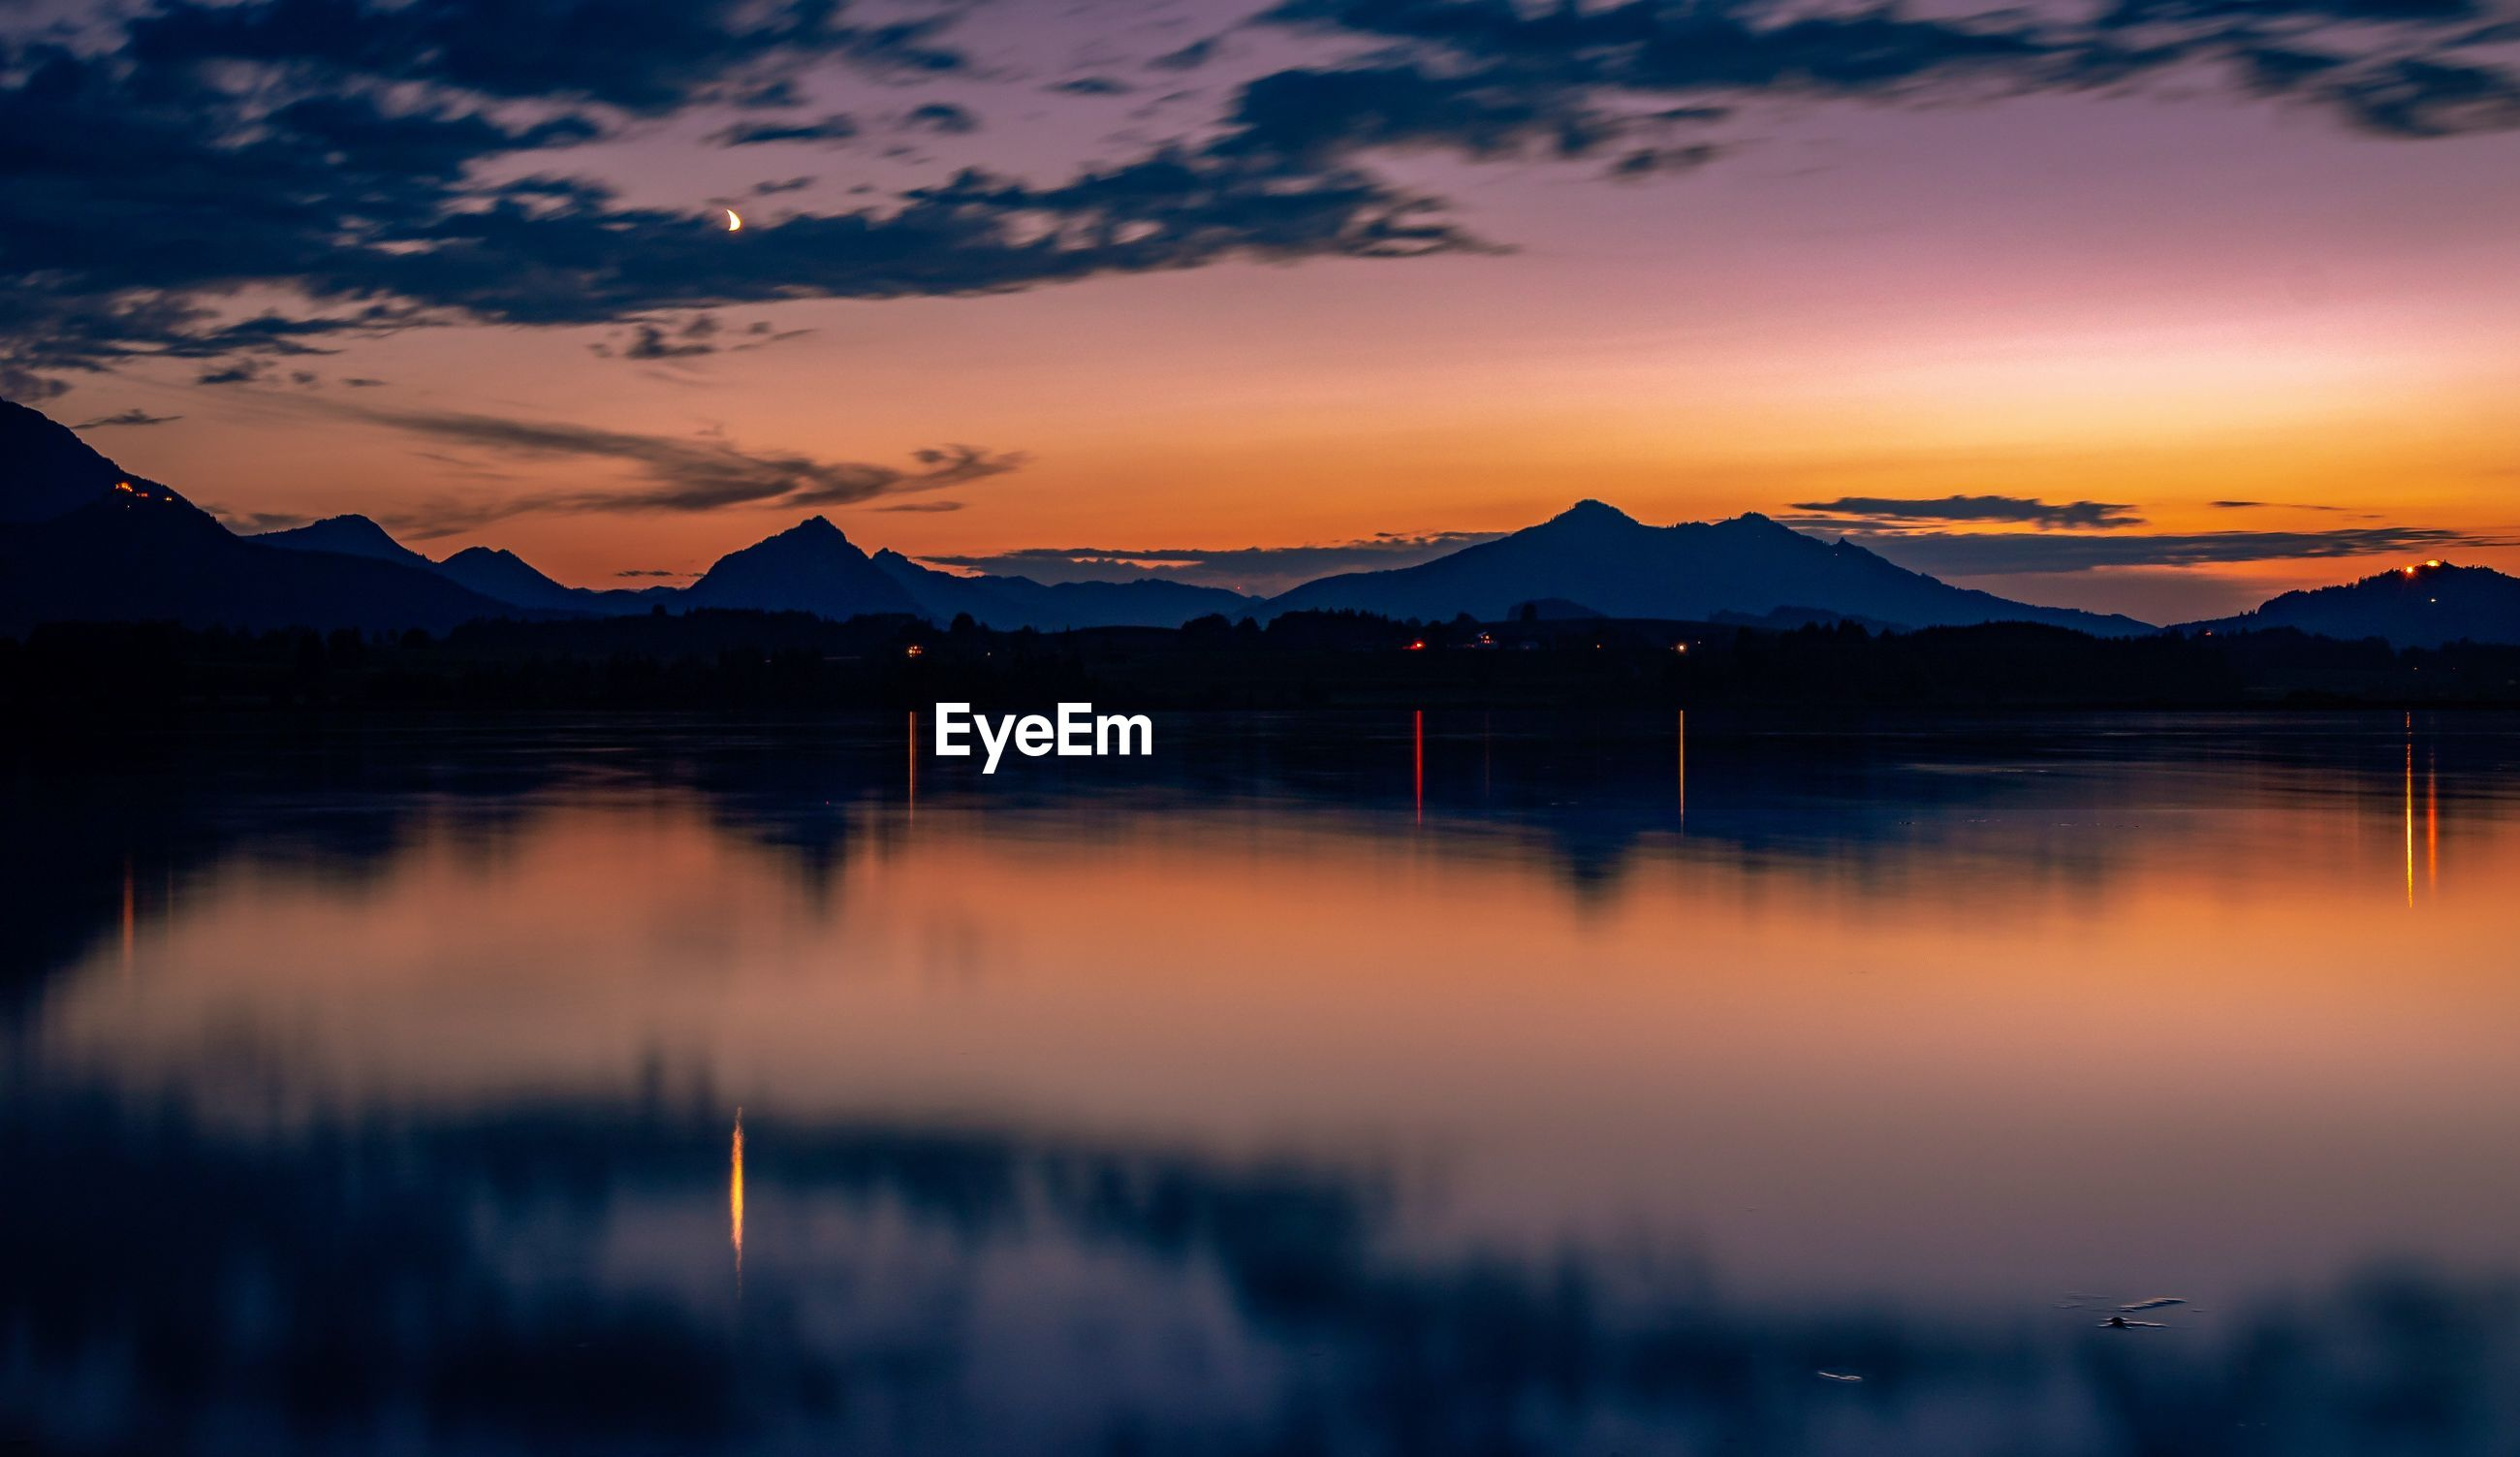 SCENIC VIEW OF LAKE BY SILHOUETTE MOUNTAIN AGAINST ORANGE SKY